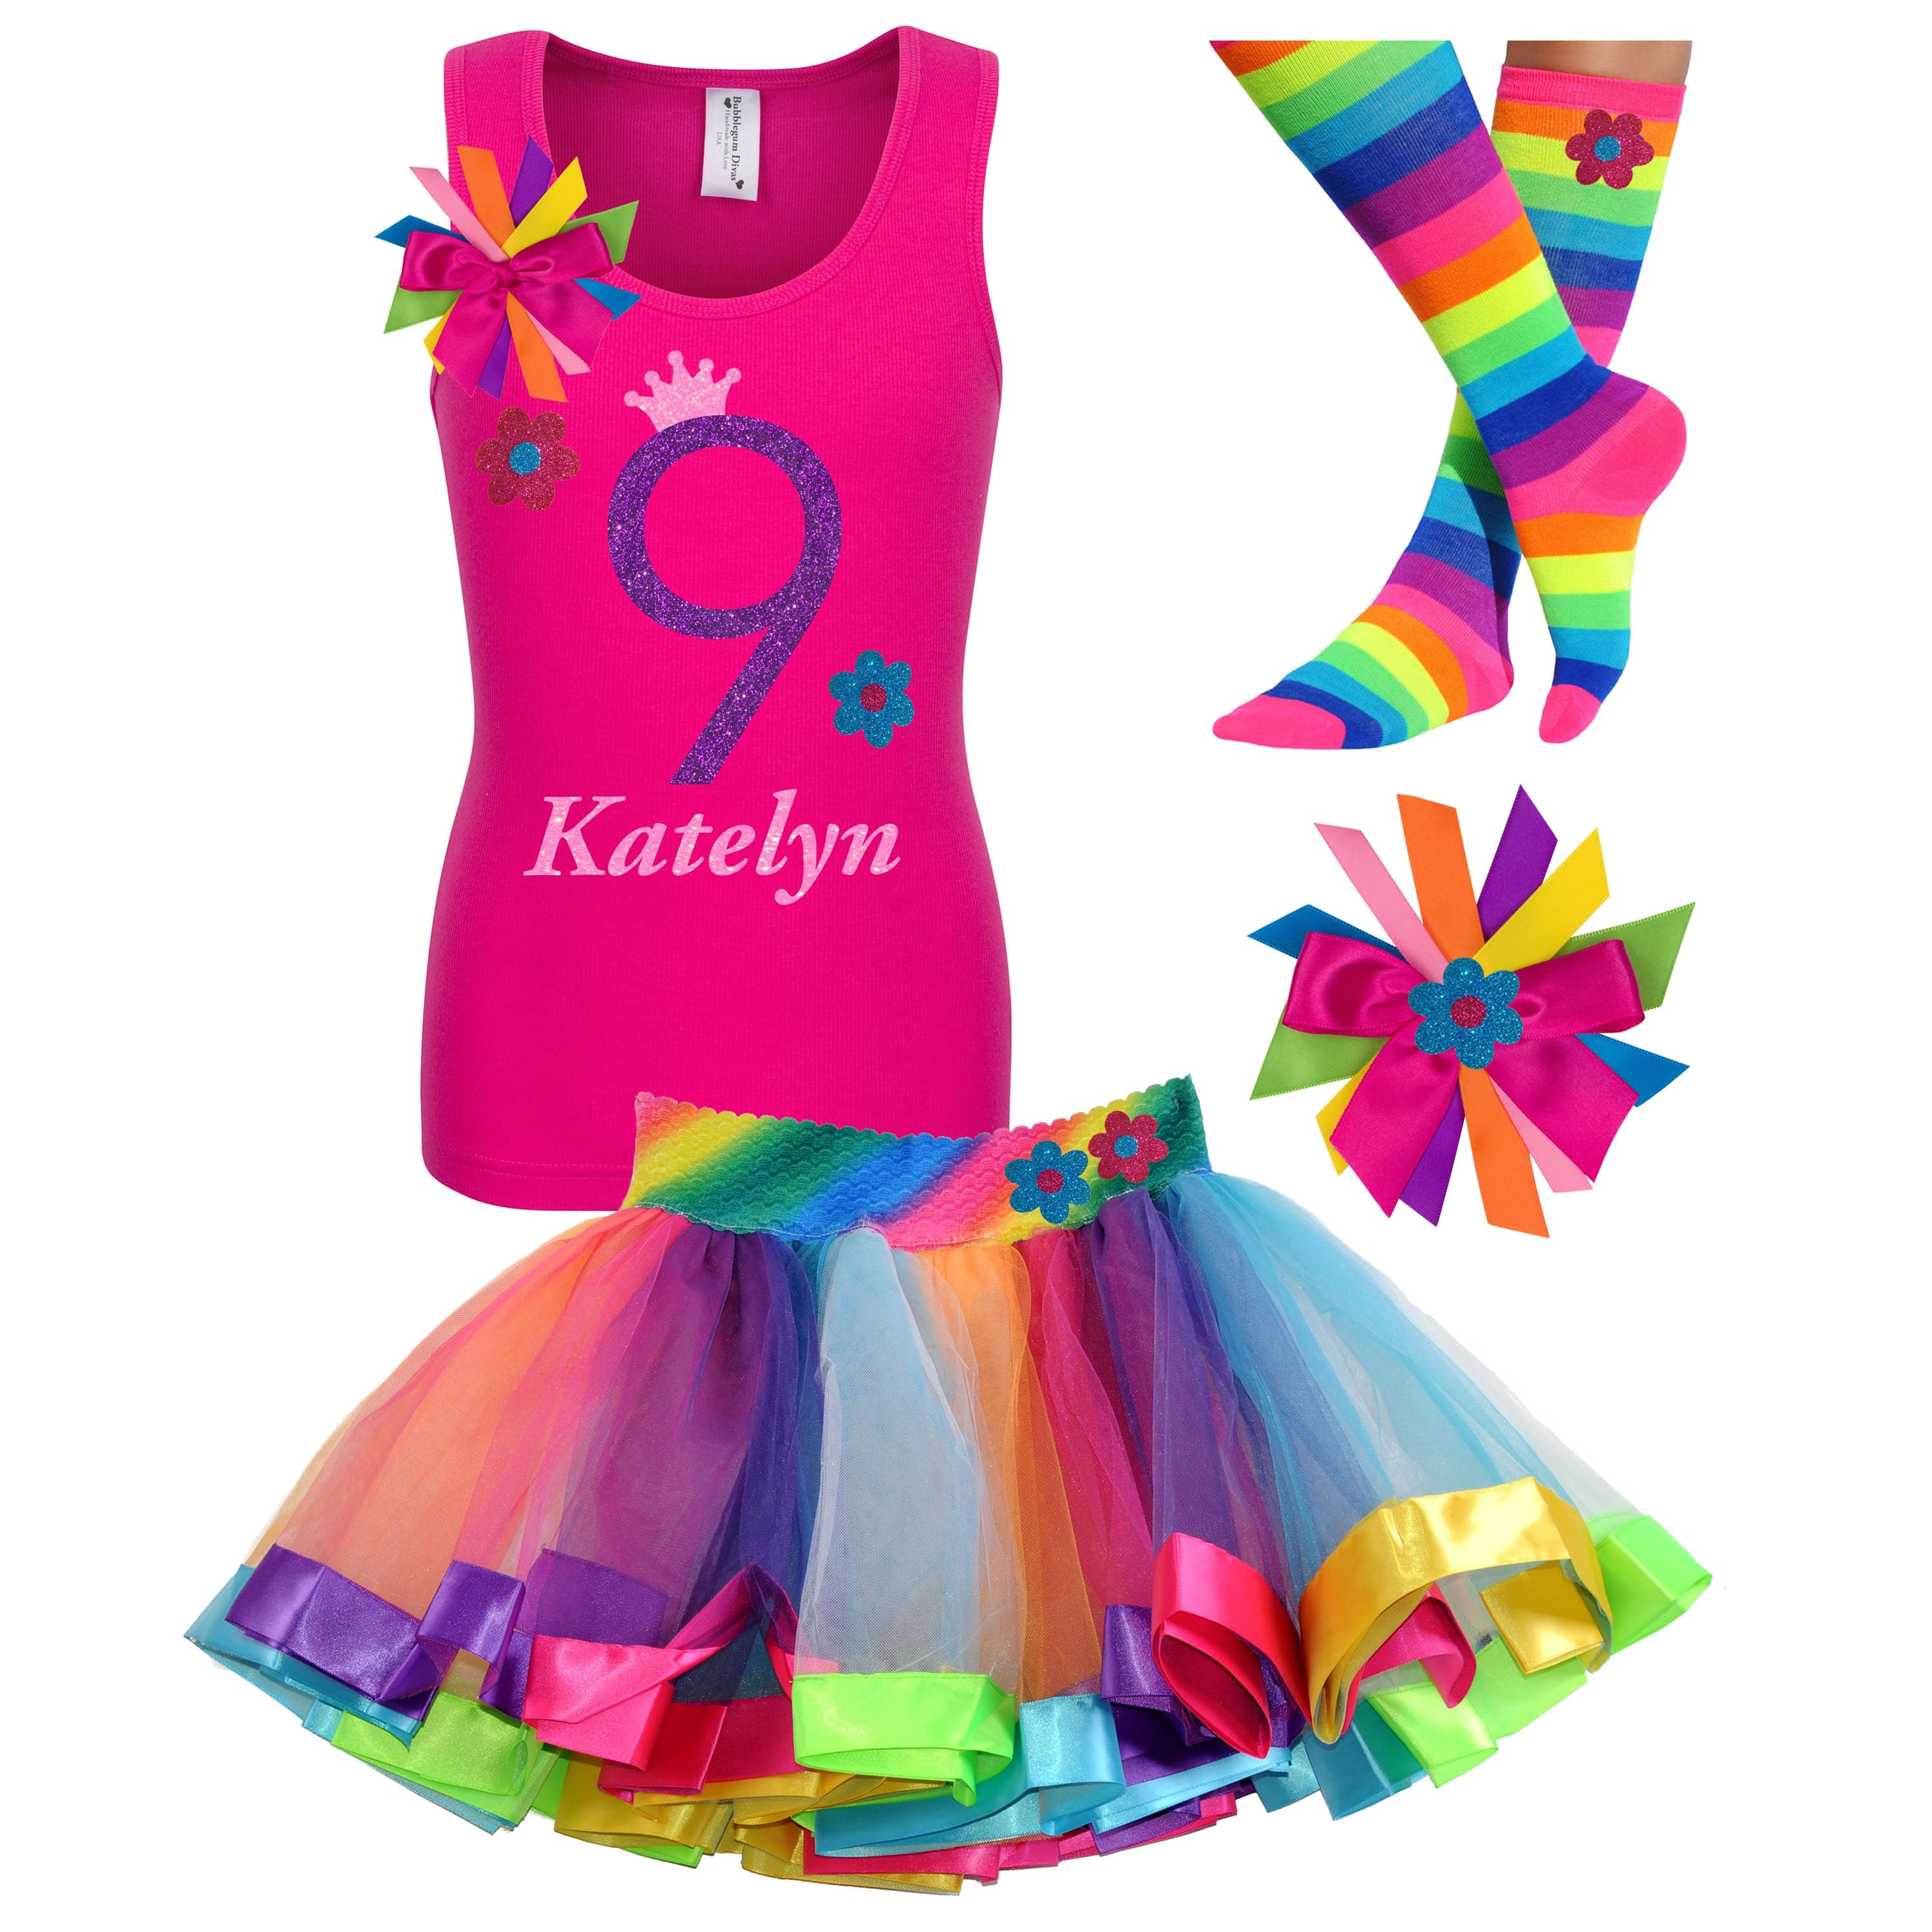 9th Birthday Girl Daisy Flower Outfit Personalized Name Age 9